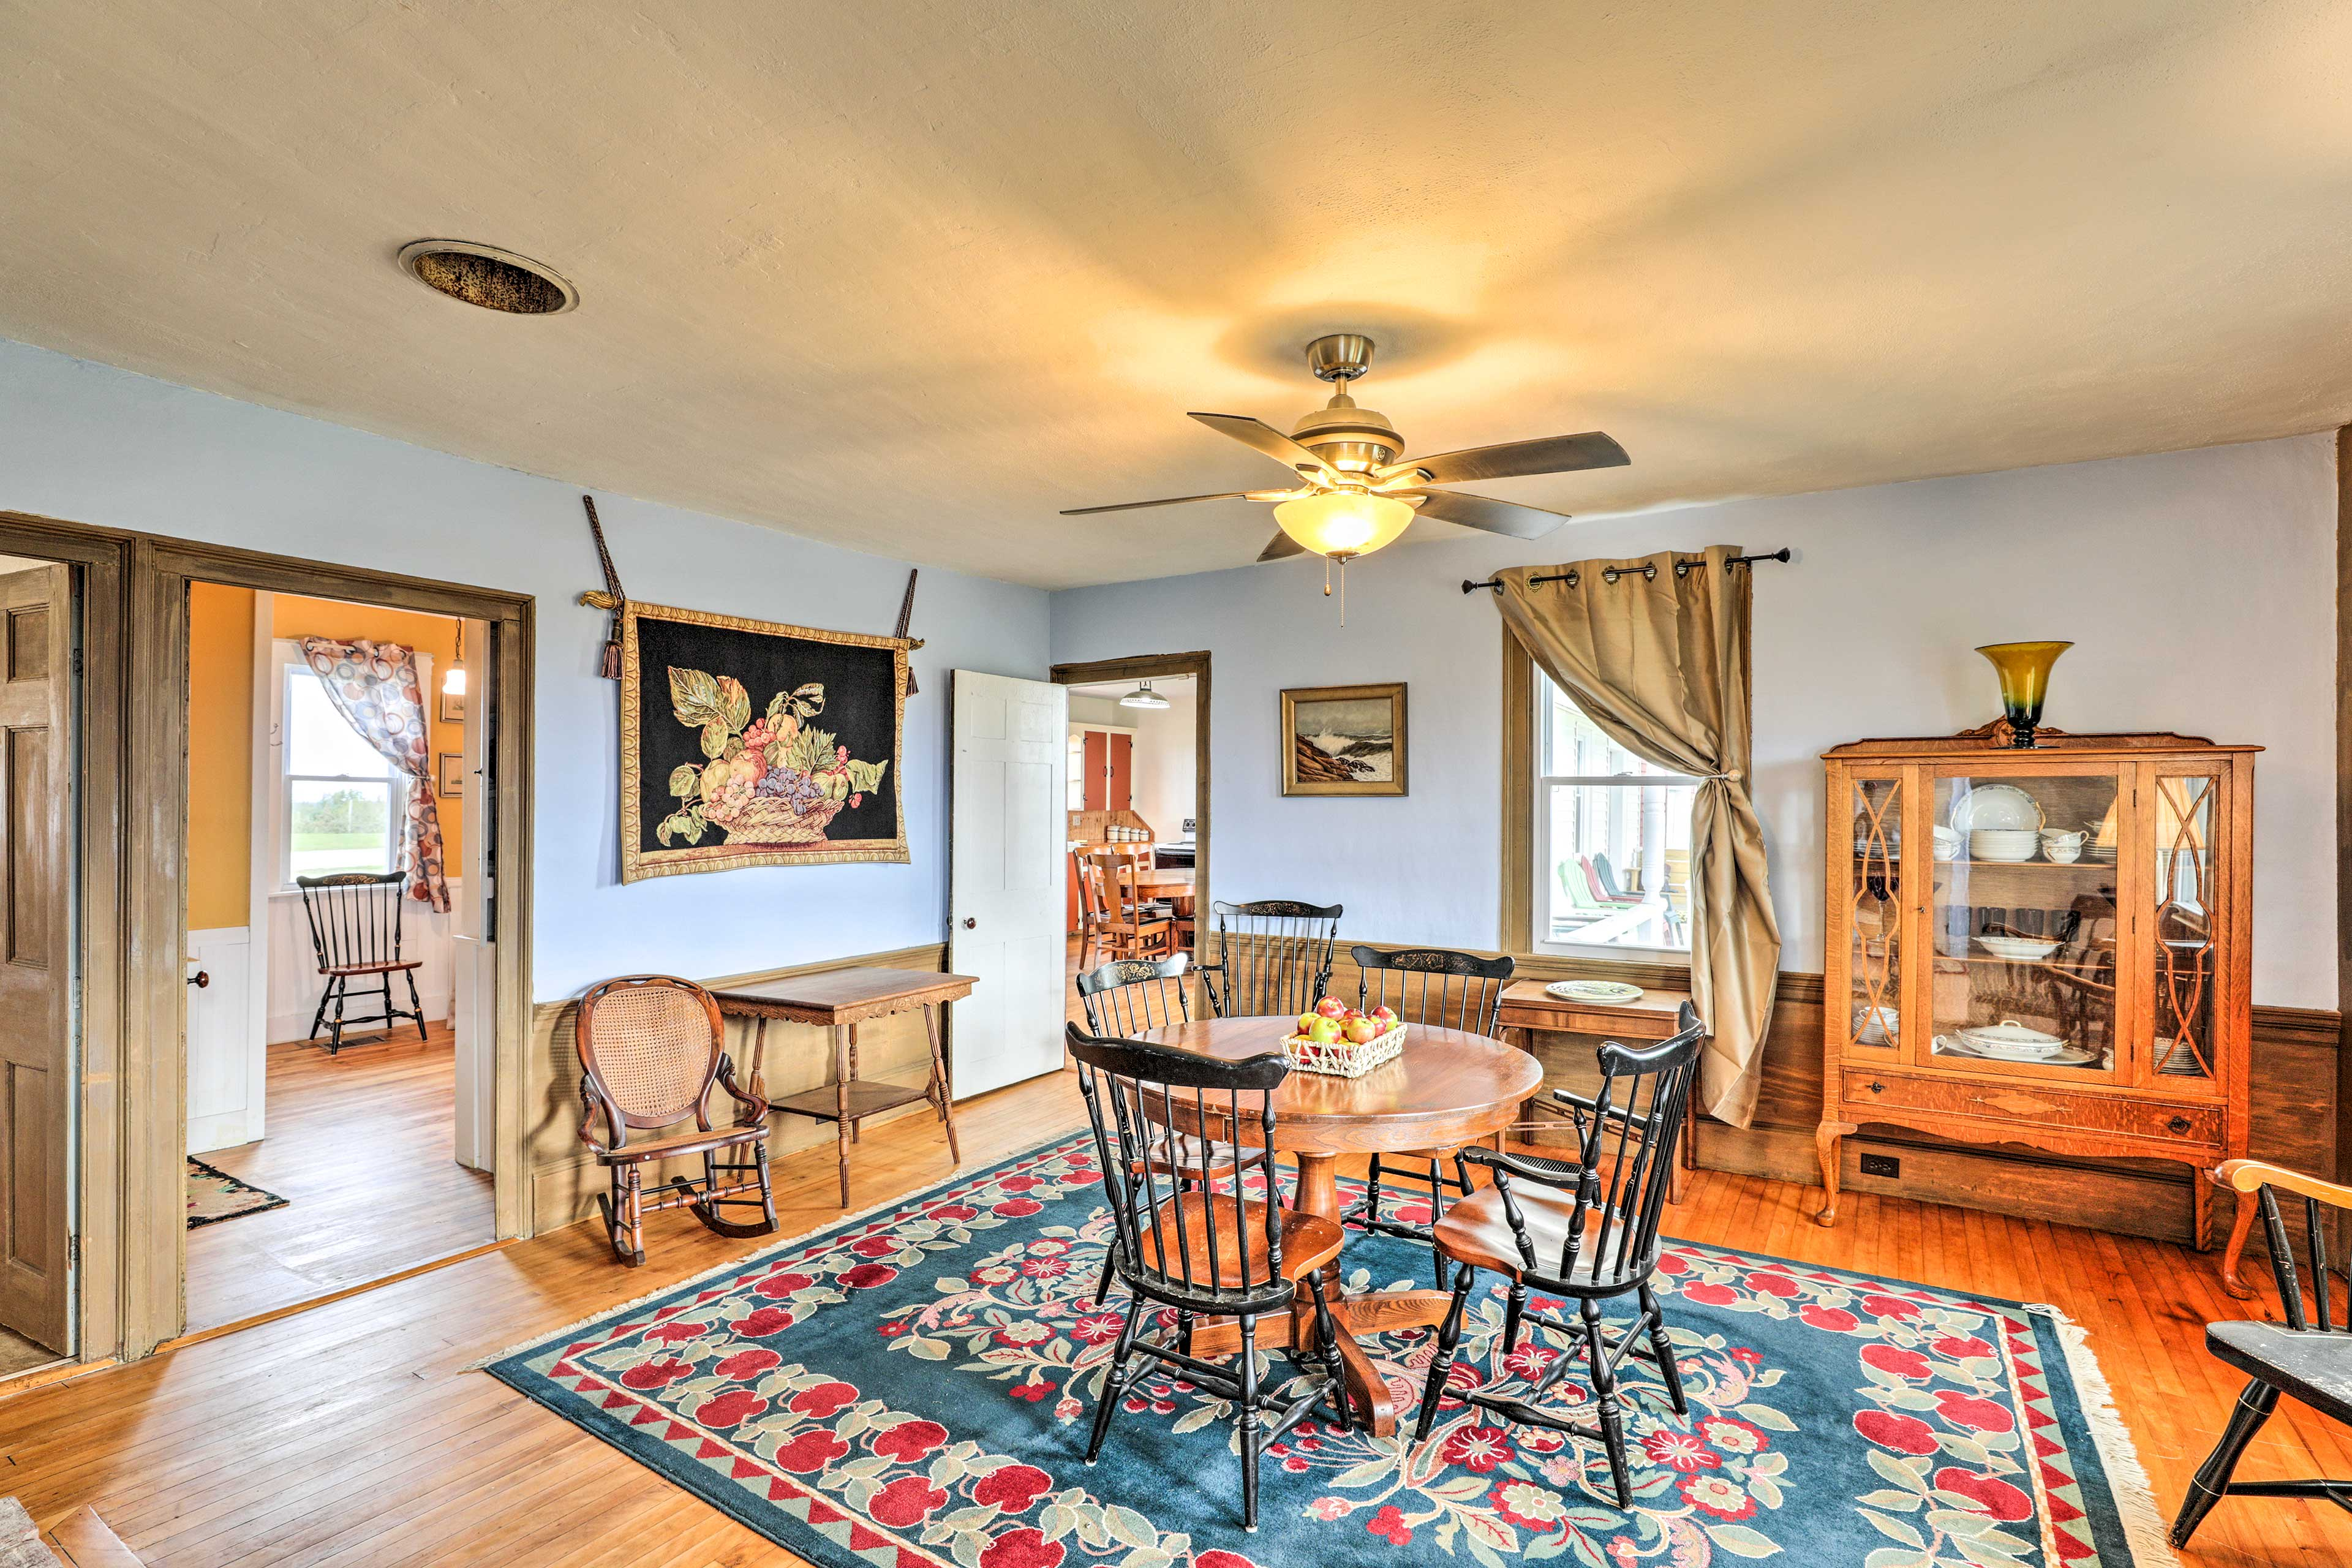 Up to 10 guests can enjoy the antique furnishings and traditional decor inside!